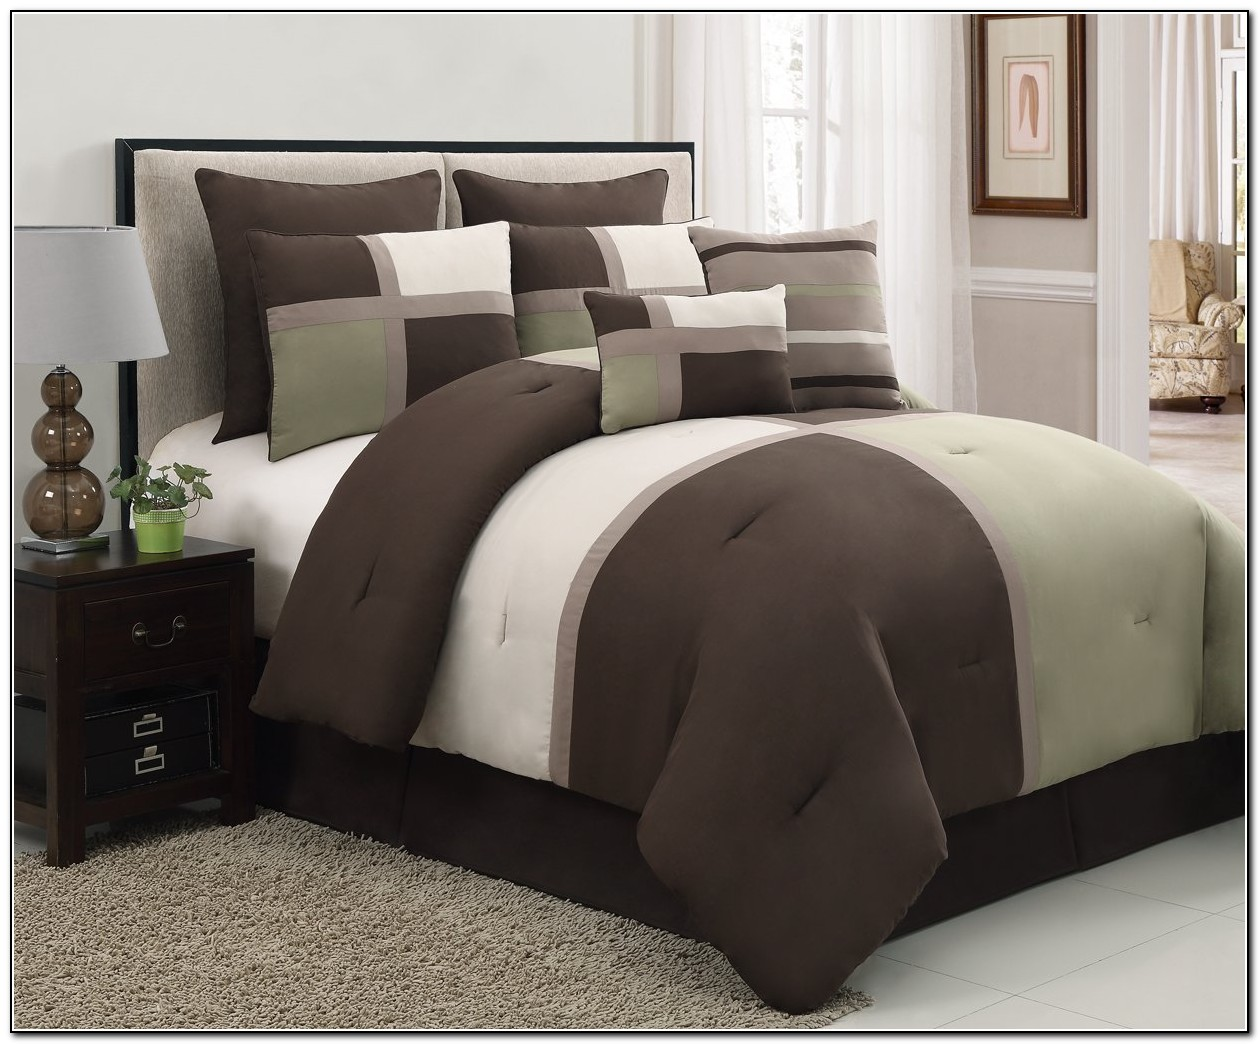 Queen Size Bed Sets For Men